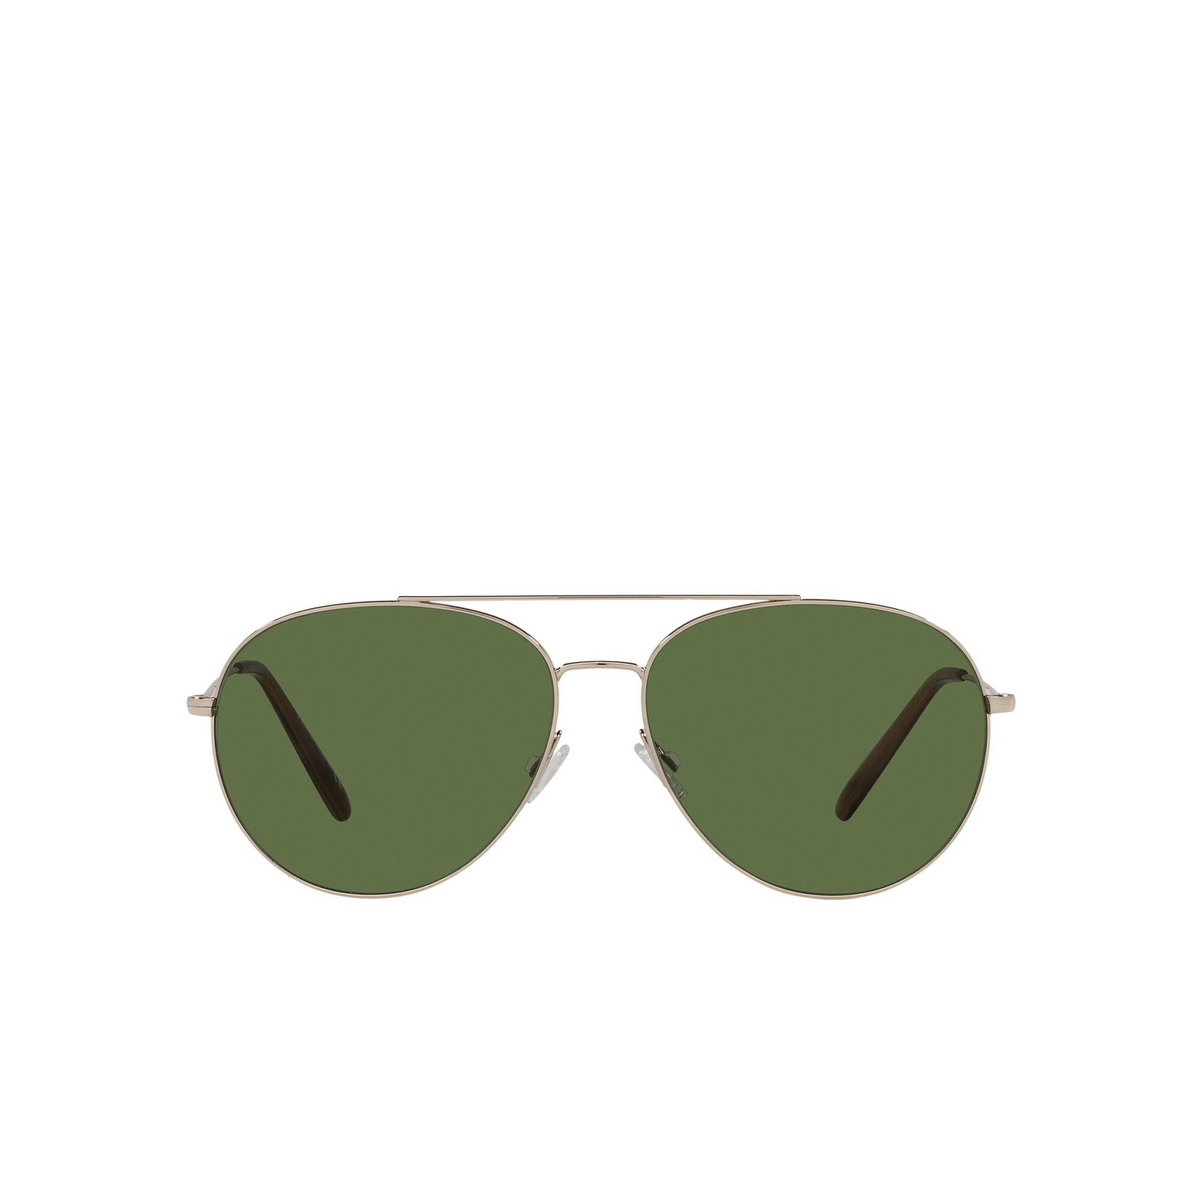 Oliver Peoples® Aviator Sunglasses: Airdale OV1286S color Soft Gold 50354E - front view.